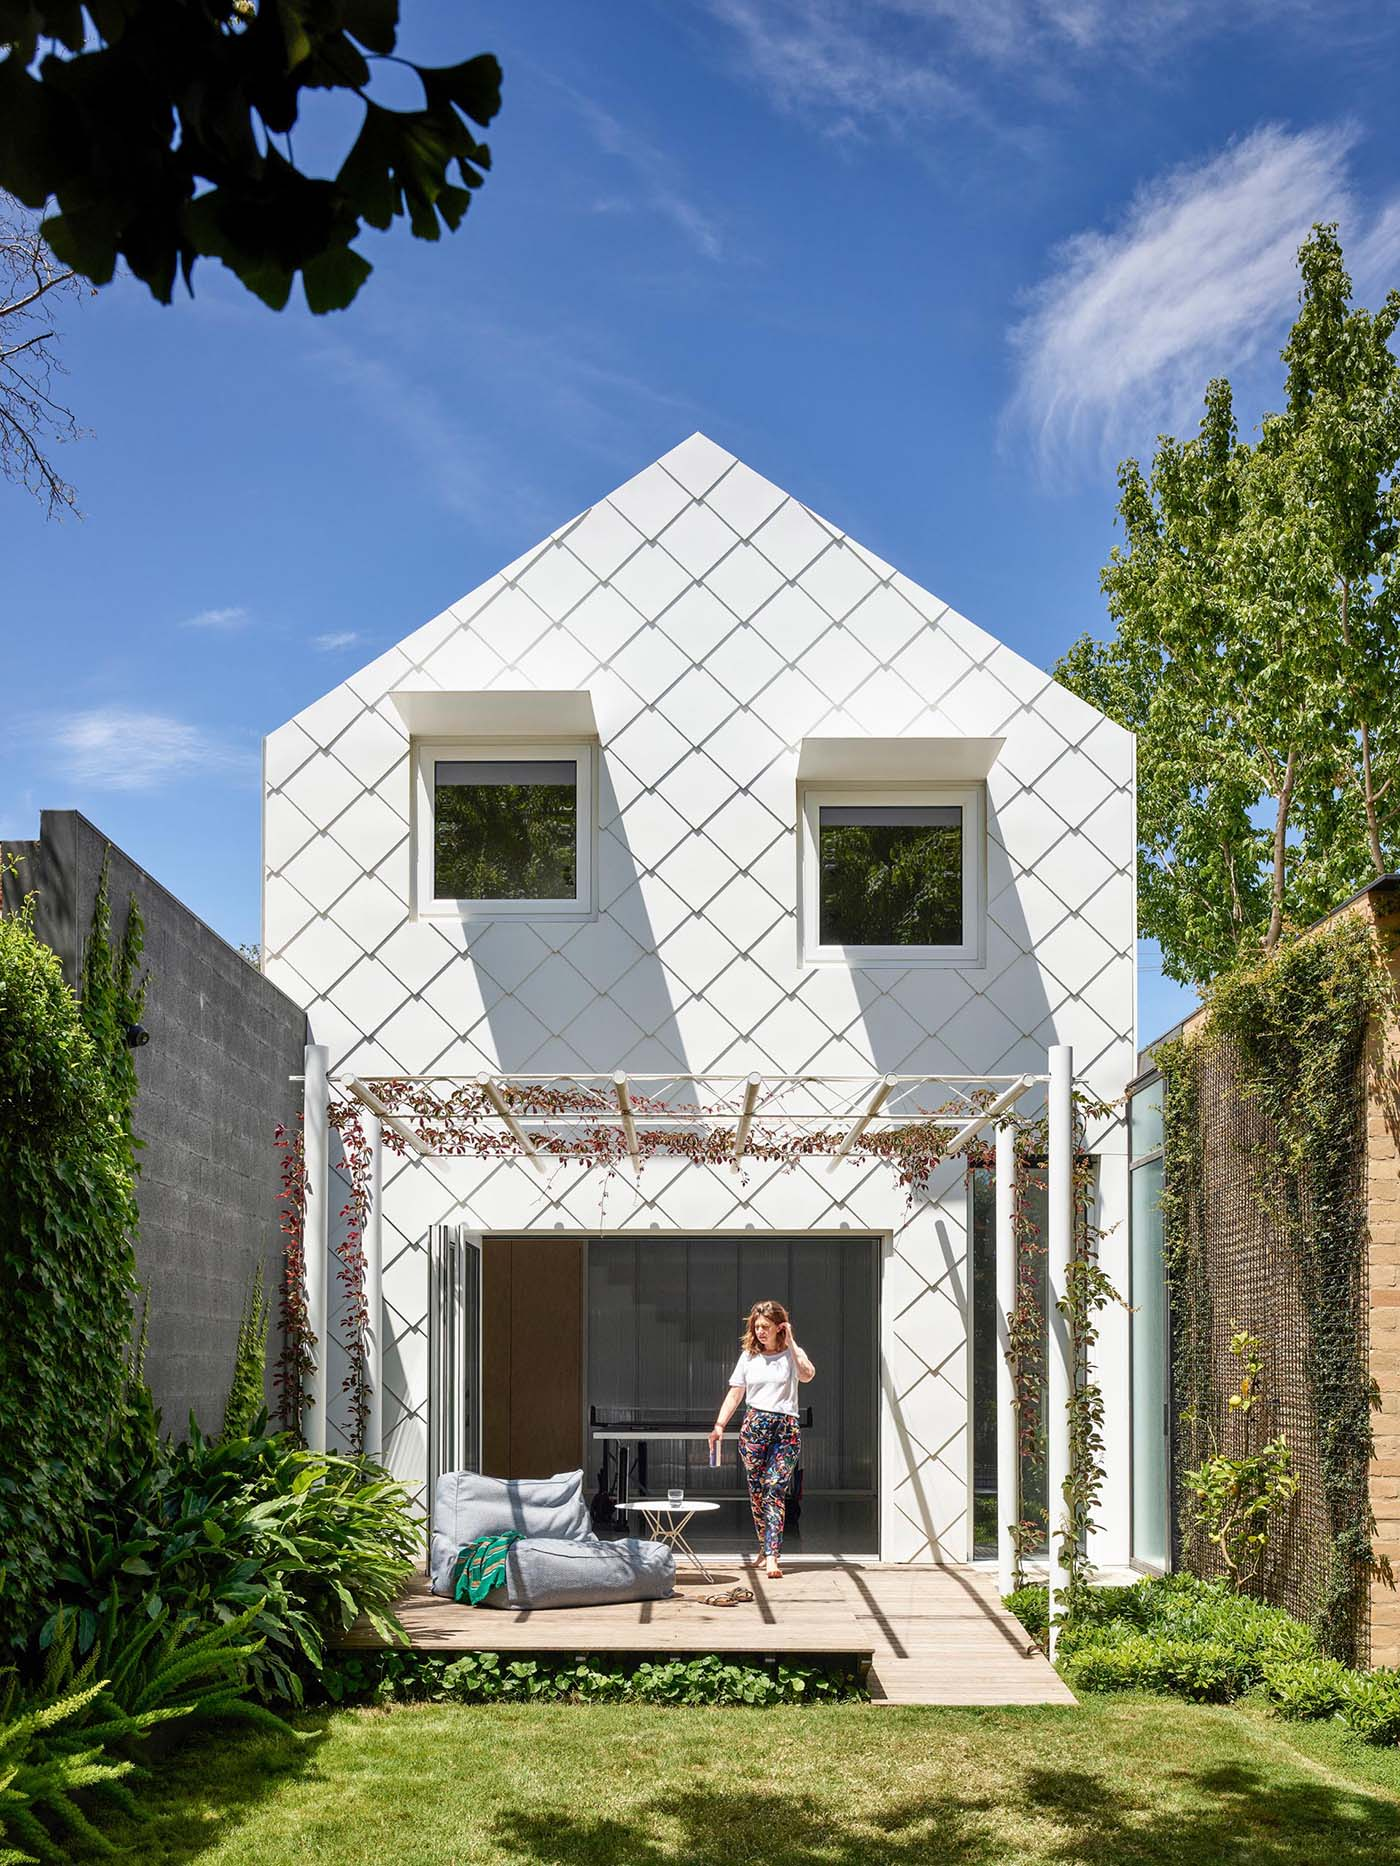 The exterior of this modern home looks like a pretty, white shingled cottage with a perfect pitched roof.